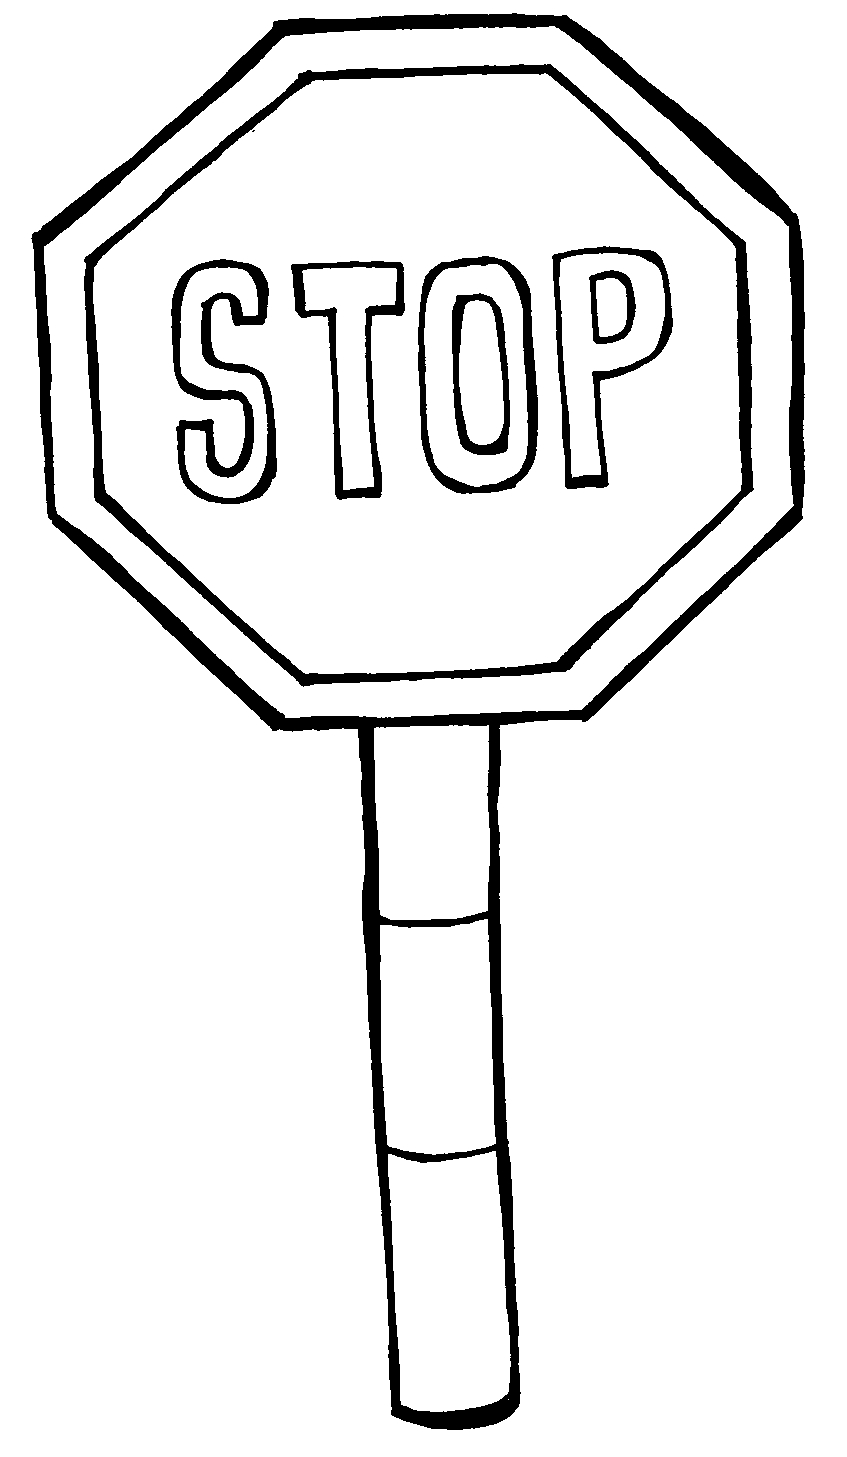 Safety Signs Coloring Pages Free Masivy World In Exquisite School Download Of Road Sign Drawing at Getdrawings Gallery